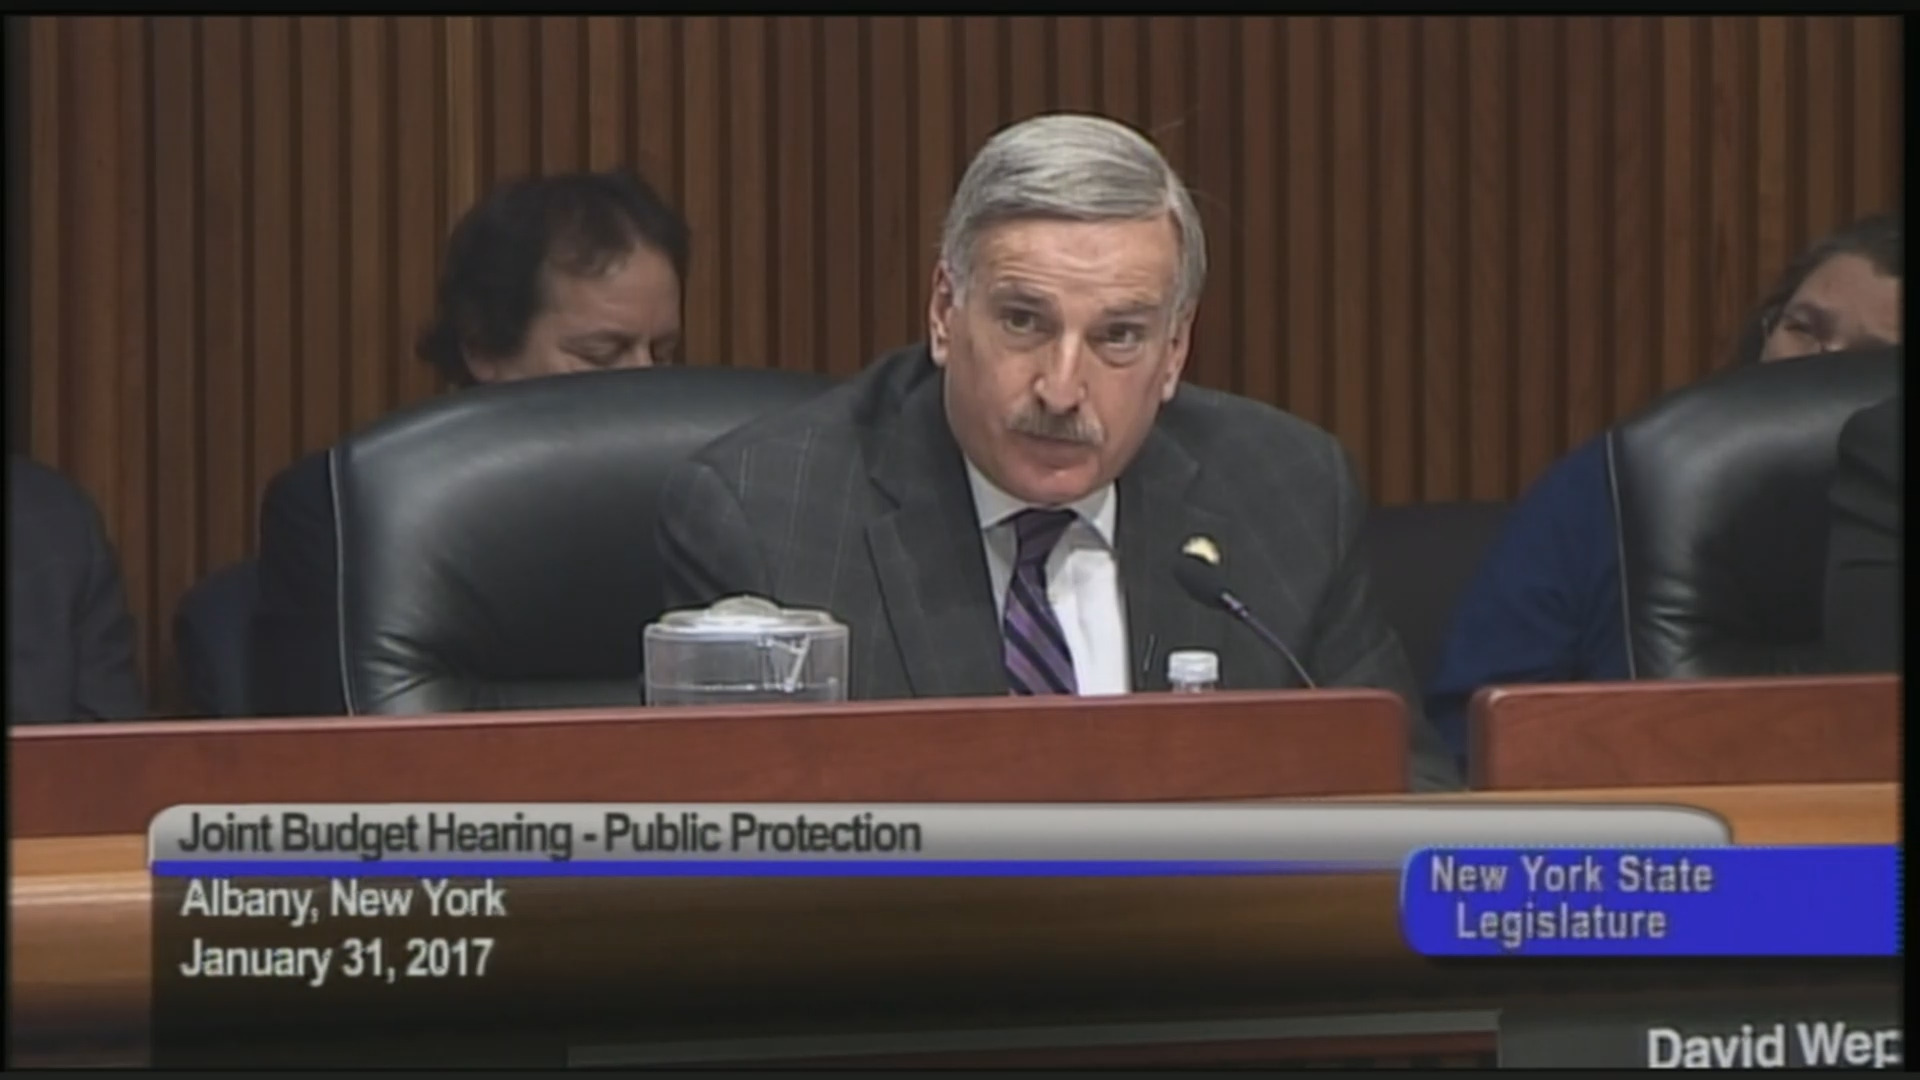 Public Protection Budget Hearing